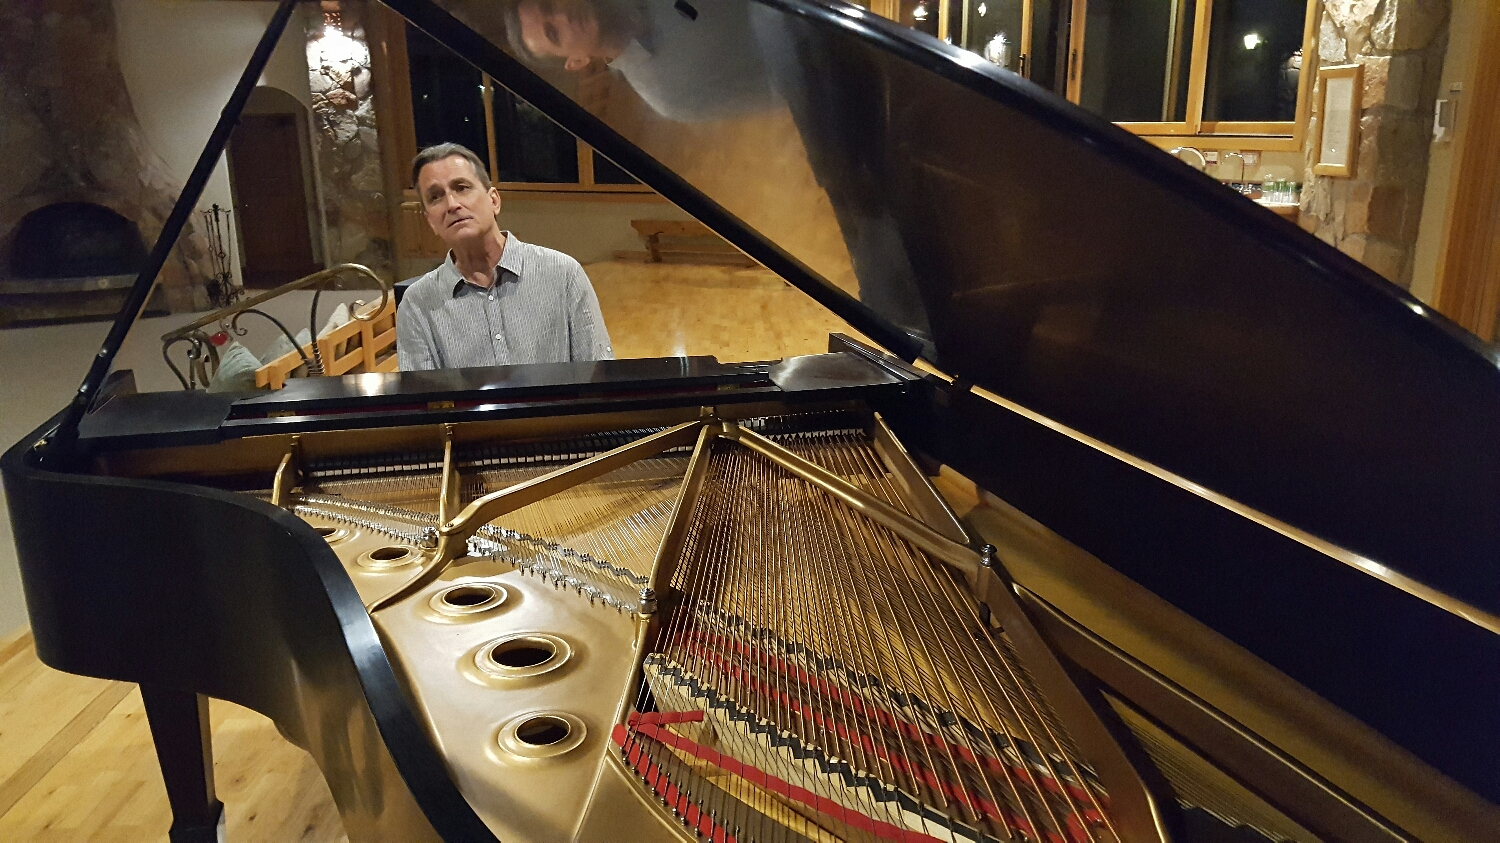 Just finished a week at Rancho La Puerta in Tecate, Mexico. Two concerts on their new Steinway B. Awesome place. Now off to Del Mar to see friends and party.....